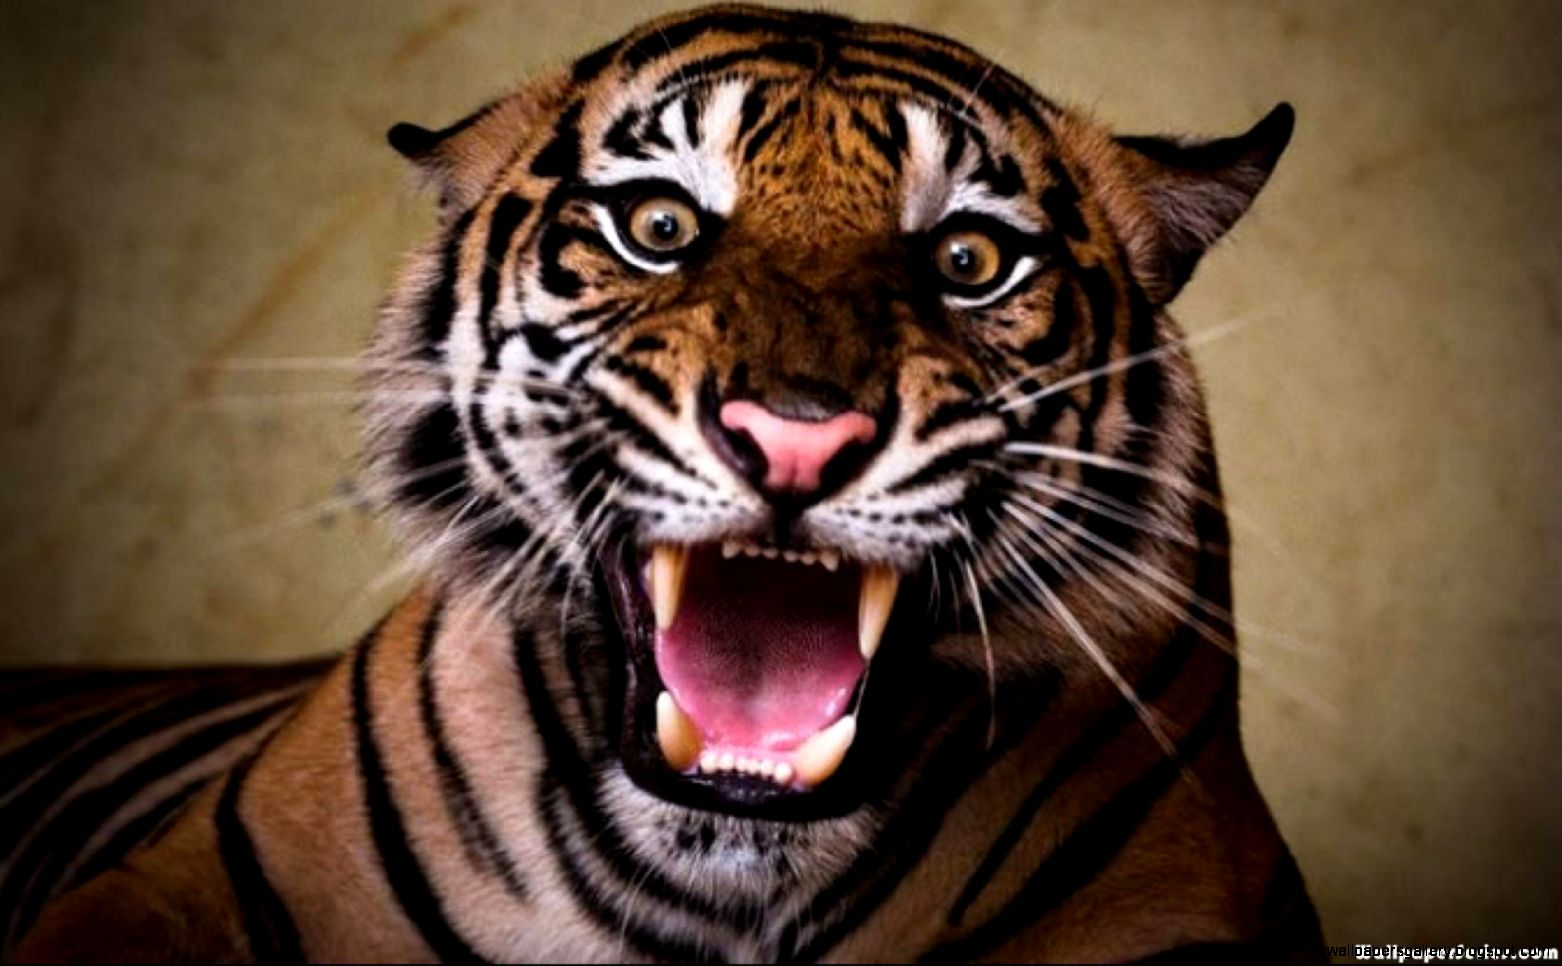 Angry Tiger Face Wallpaper Wallpapers Gallery